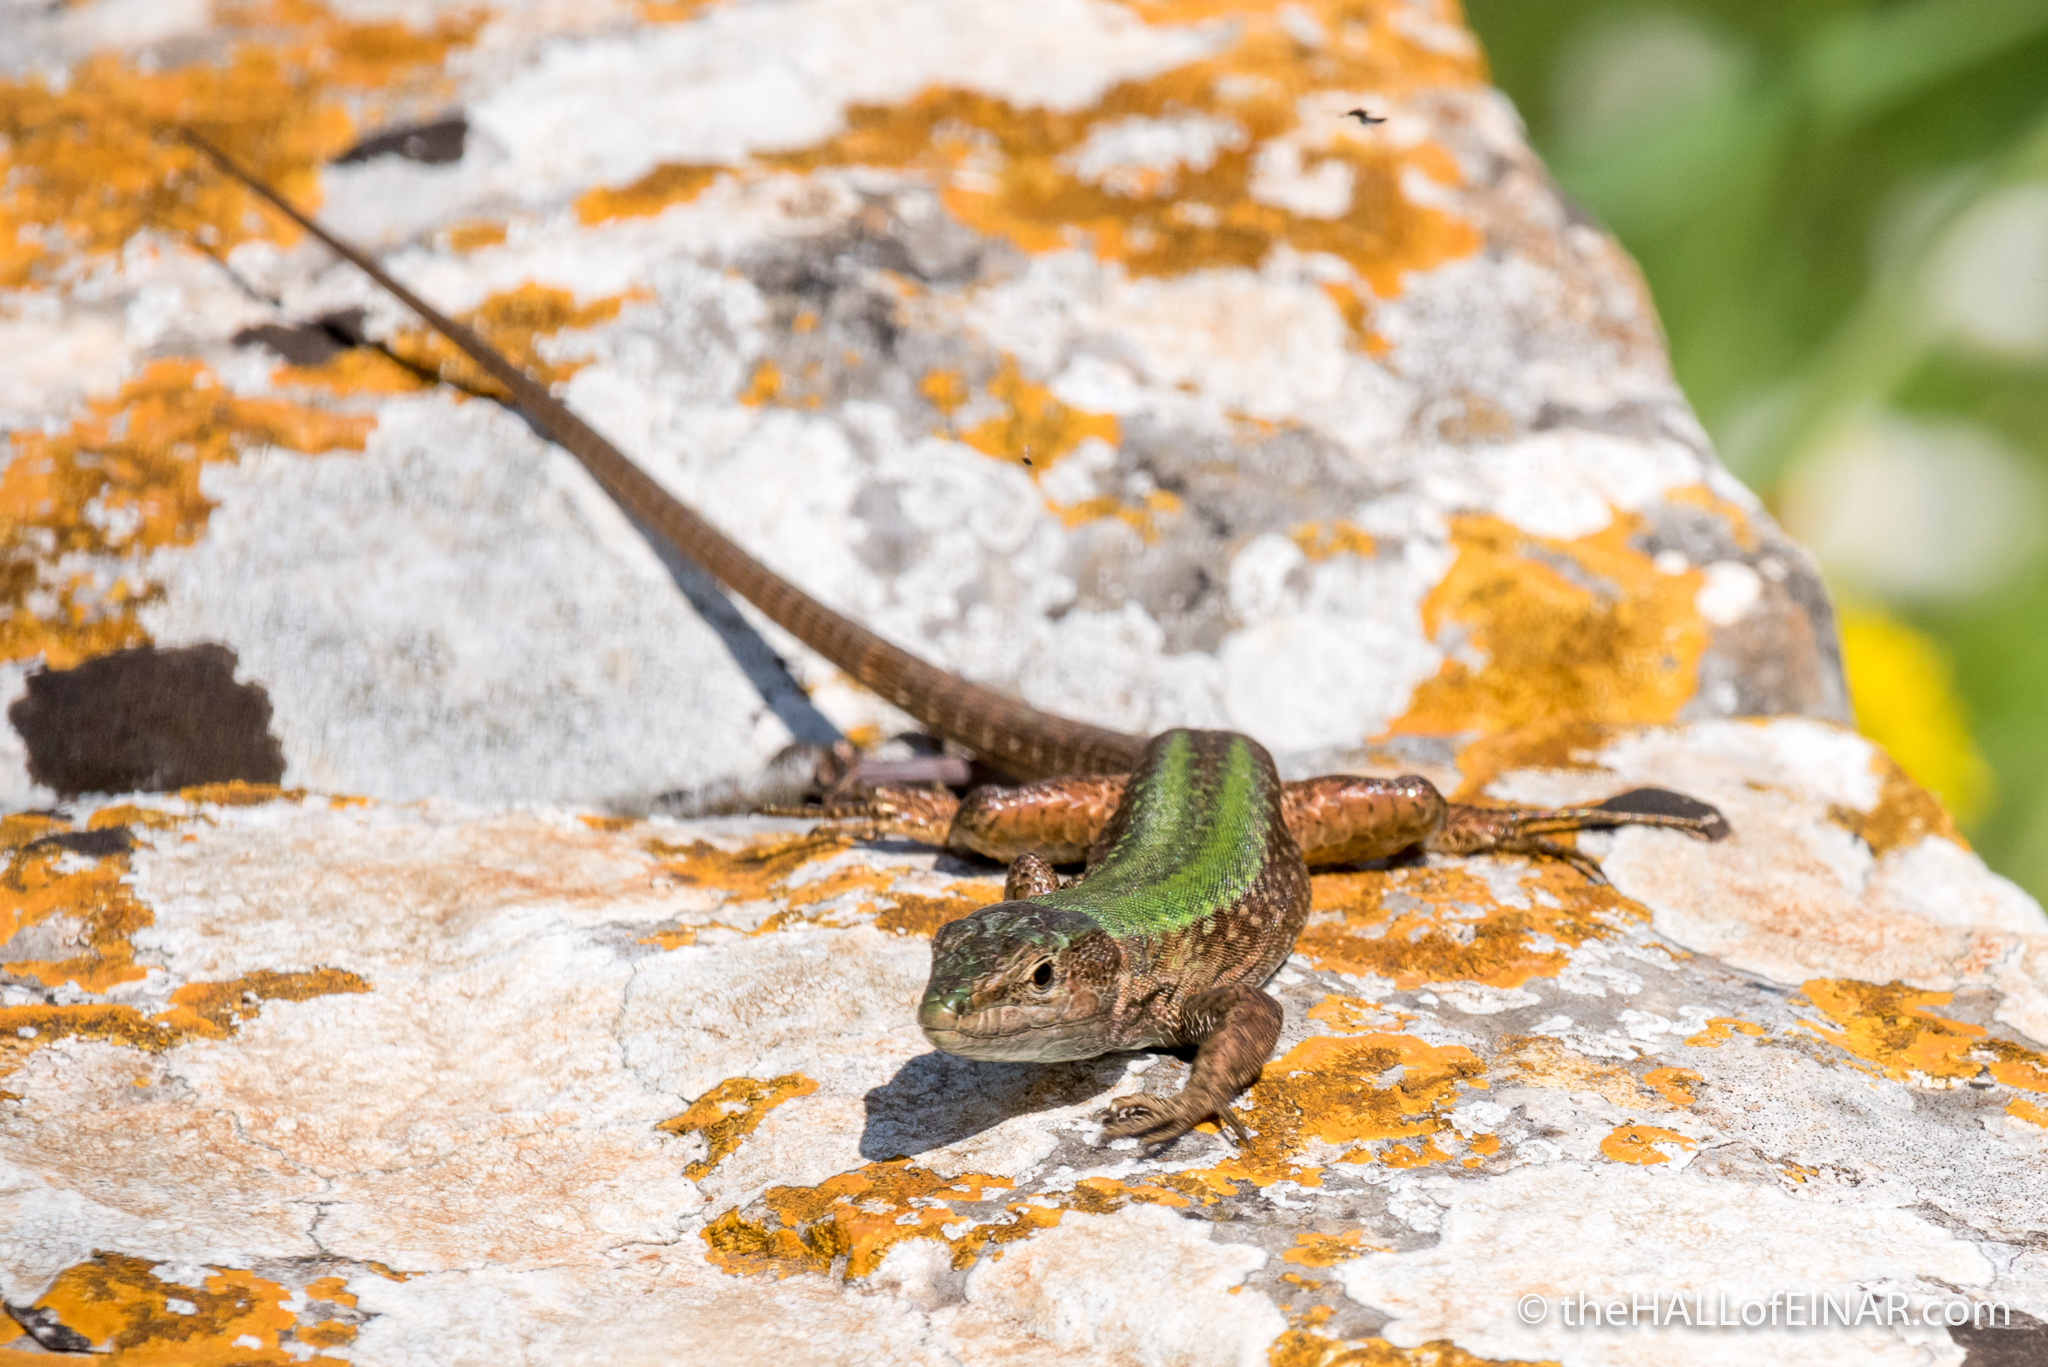 Italian Wall Lizard - The Hall of Einar - photograph (c) David Bailey (not the)